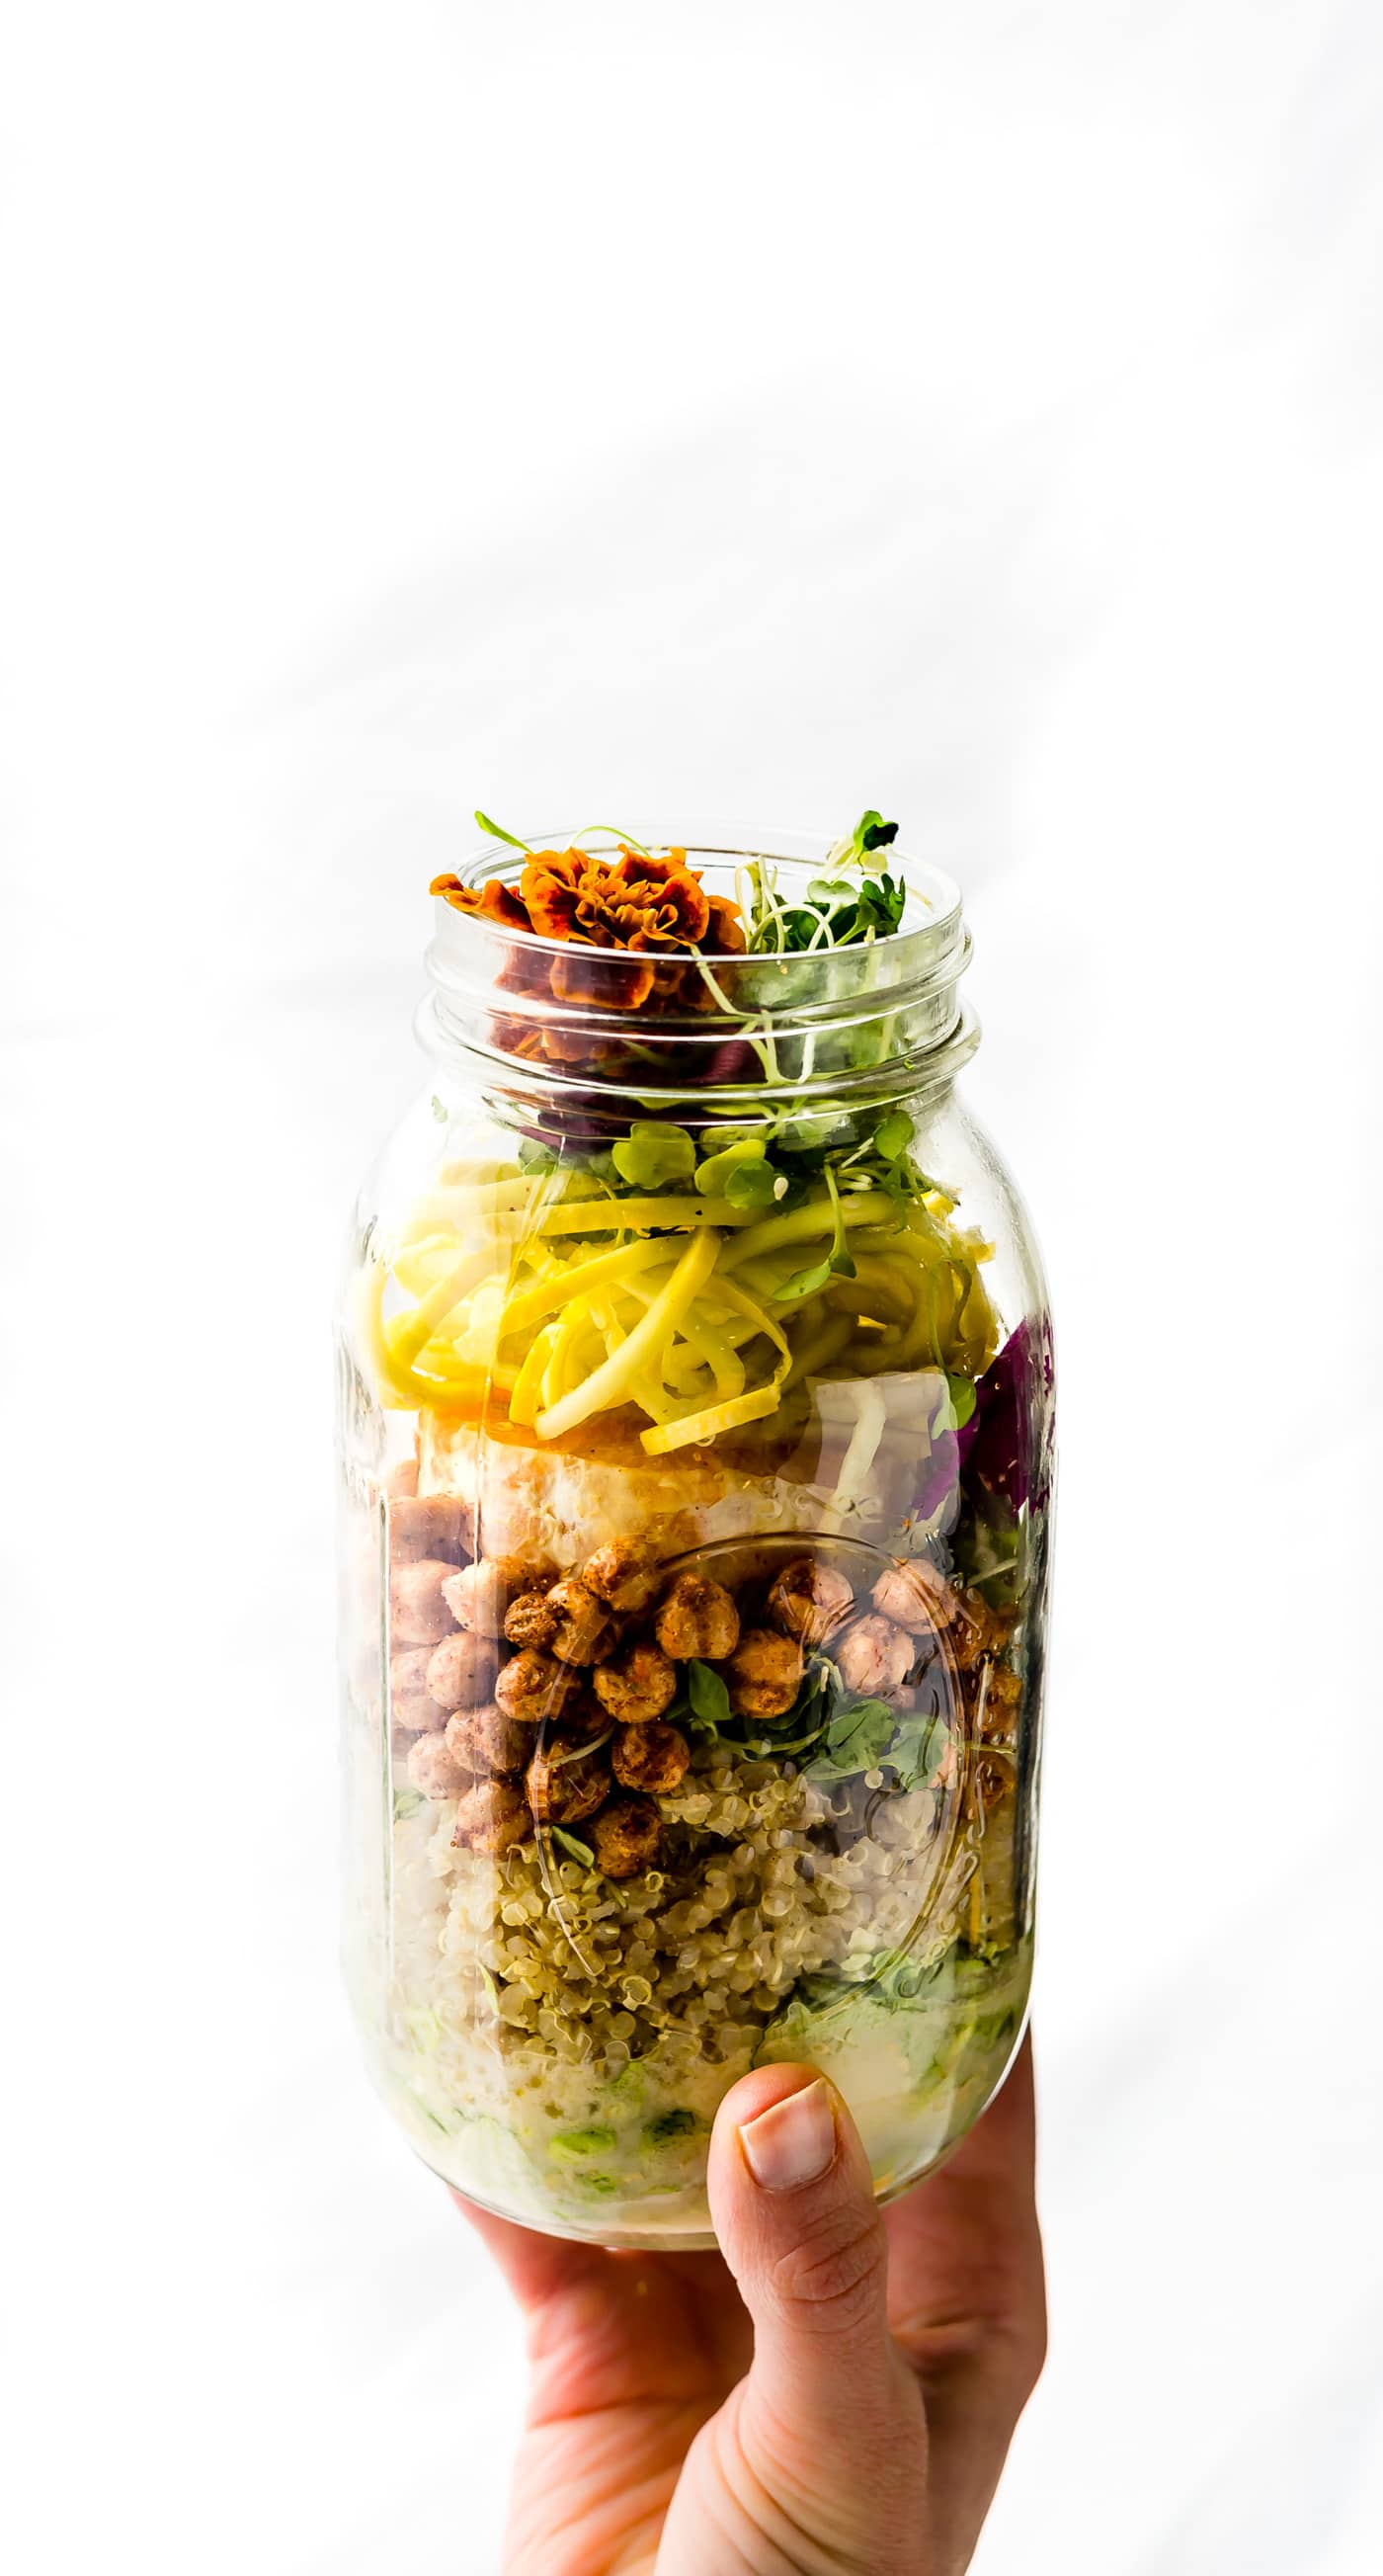 Mason jar salads are healthy, portable salads, picnic ready and packed with nourishment! This vegetarian Mason Jar Salad will keep you fueled and energized all day! Seasonal vegetables, roasted chickpeas, and a homemade sesame yogurt dressing make for a perfectly balanced lunch at home or on the go.